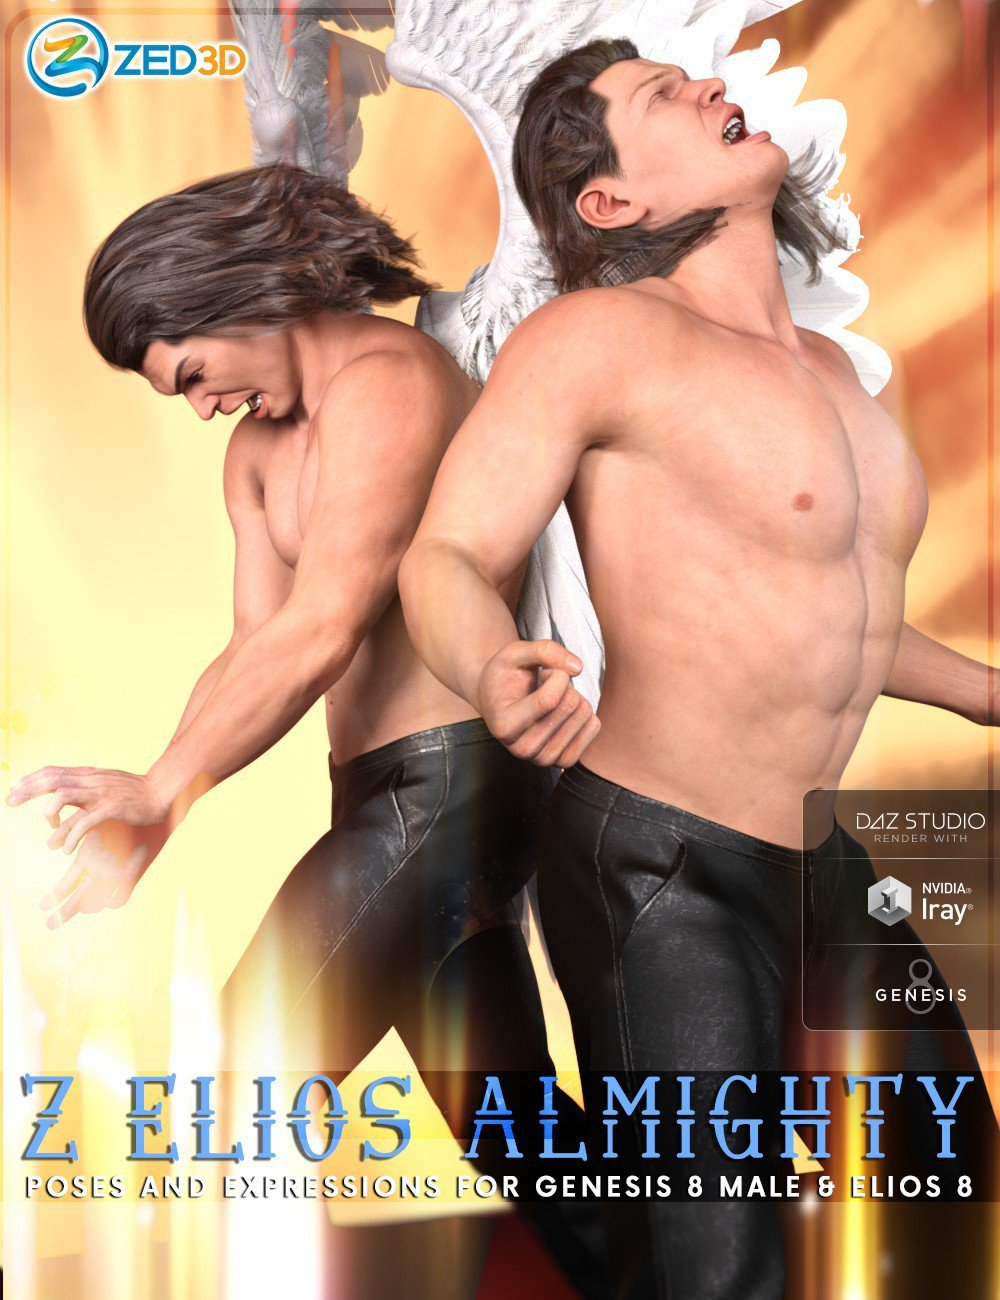 Z Elios Almighty Poses and Expressions for Genesis 8 Male and Elios 8